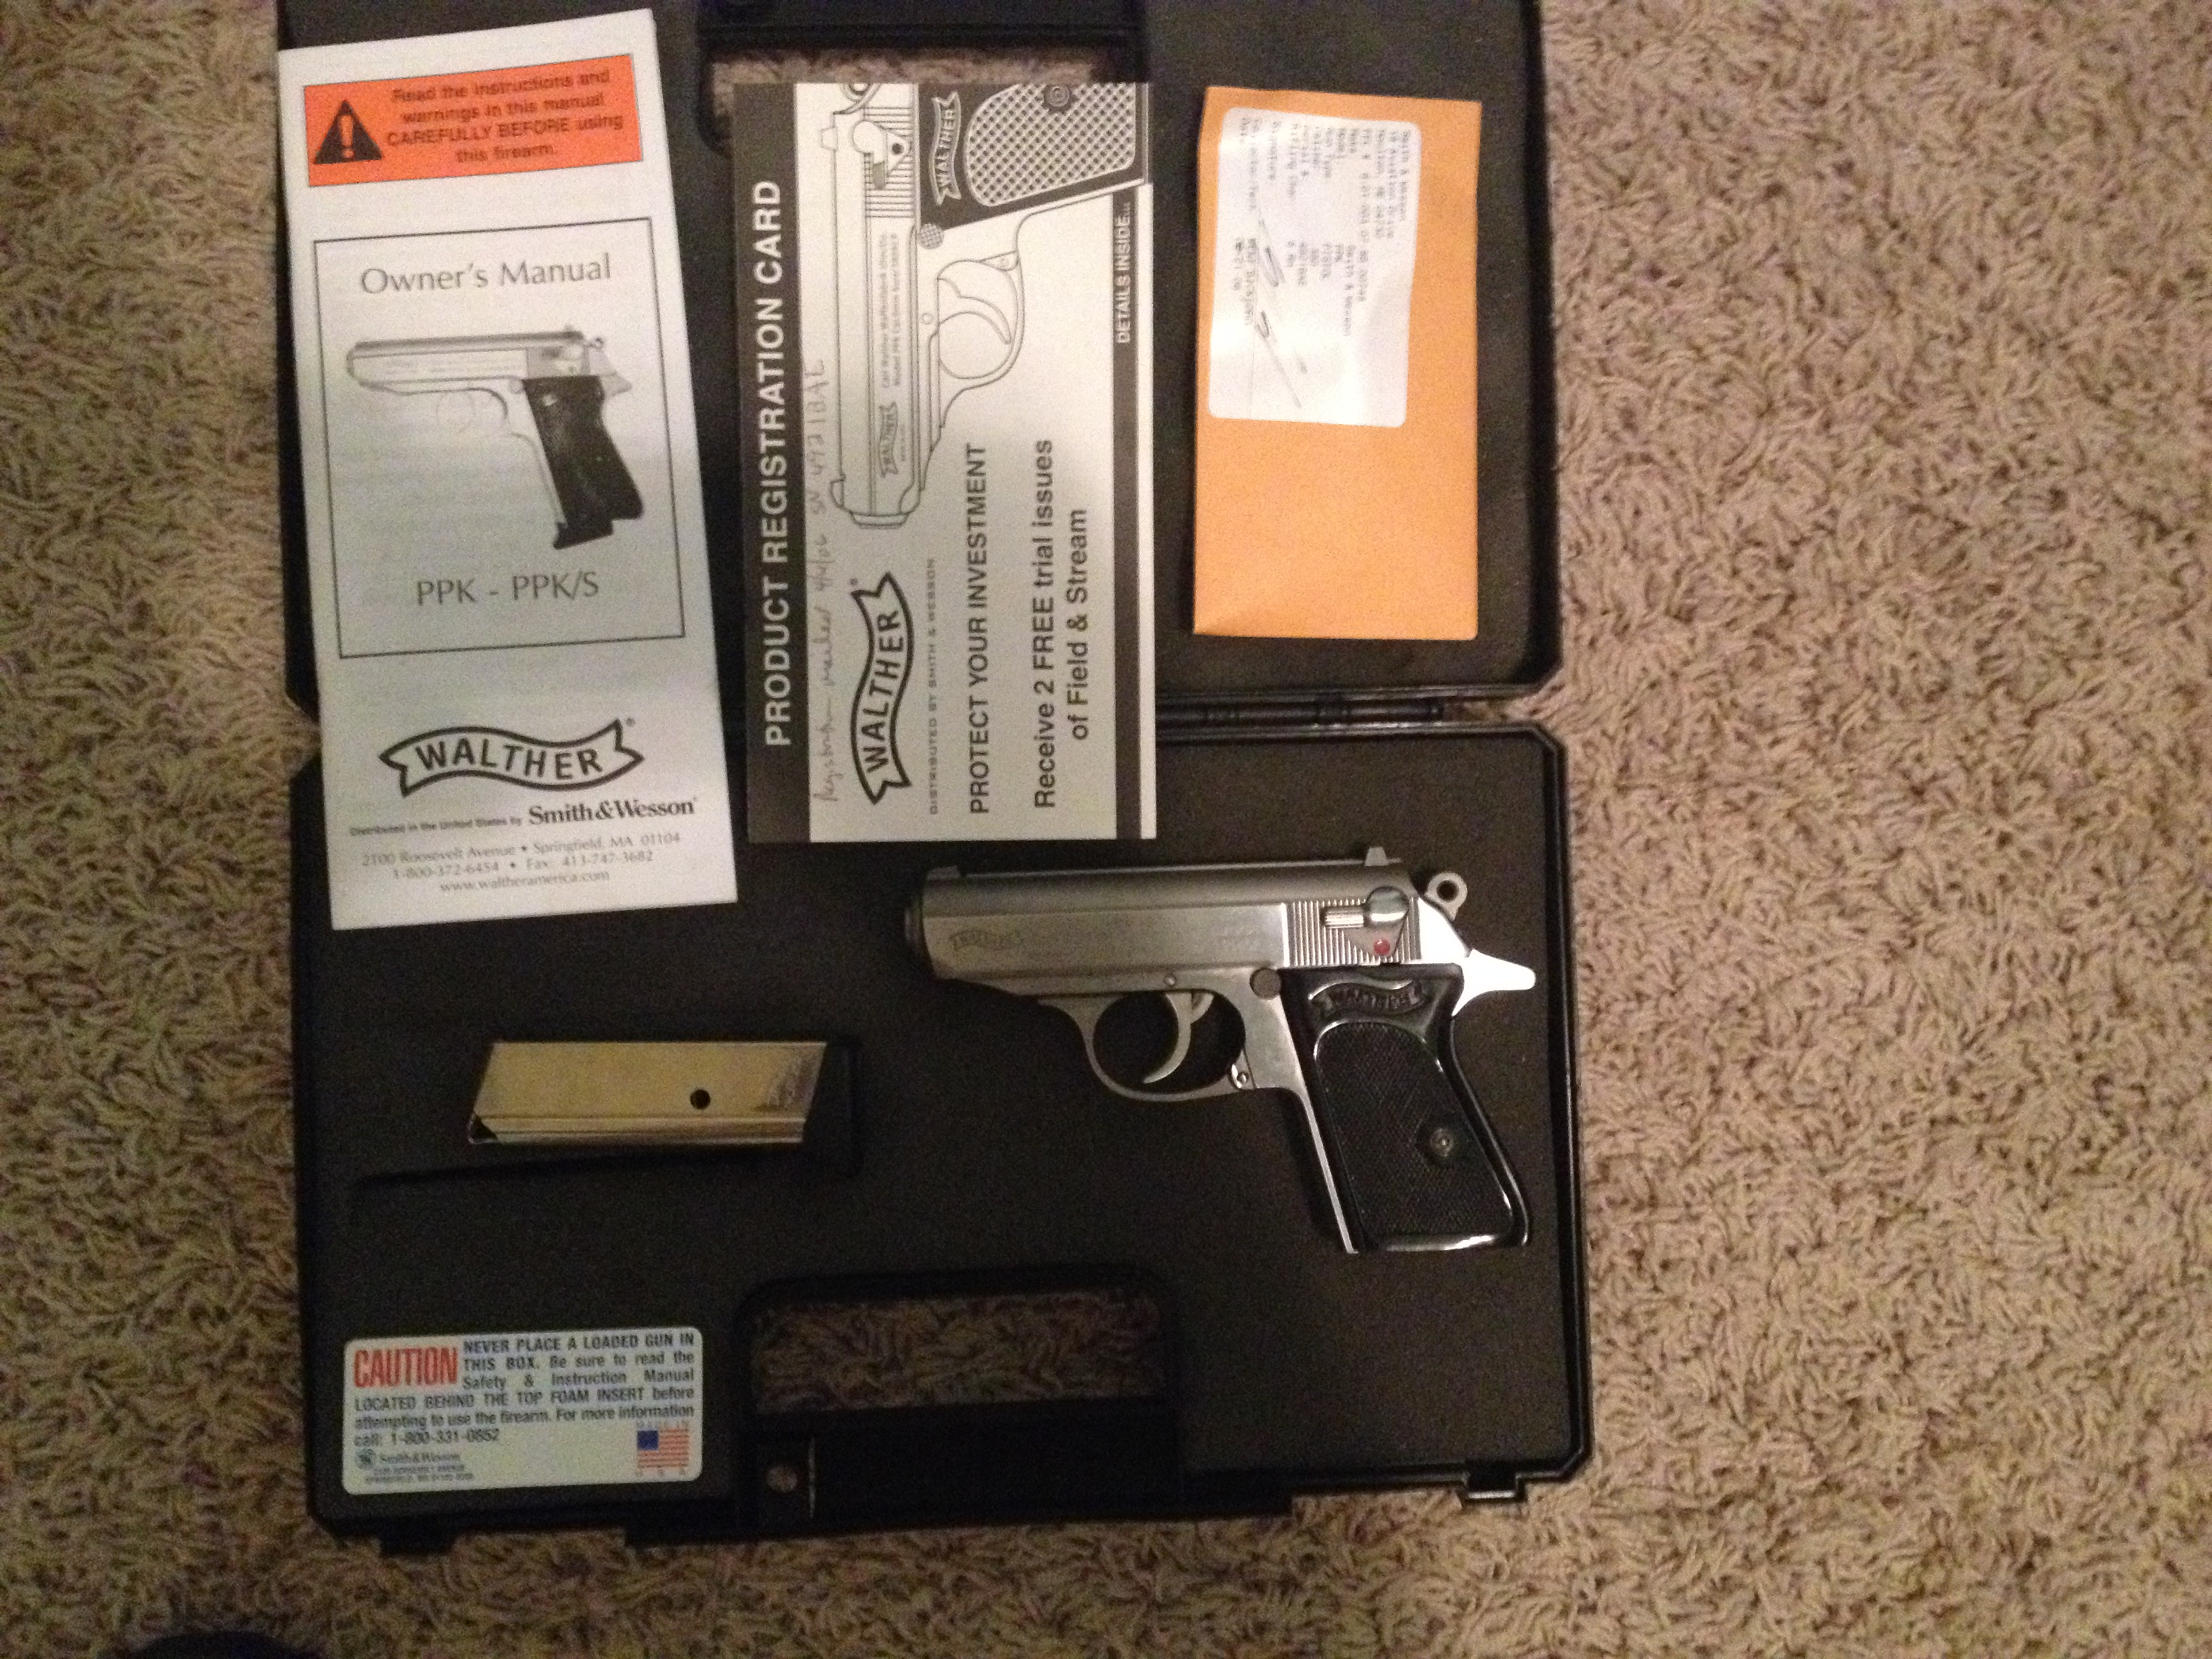 Walther PPK Stainless 380 | Mississippi Gun Owners